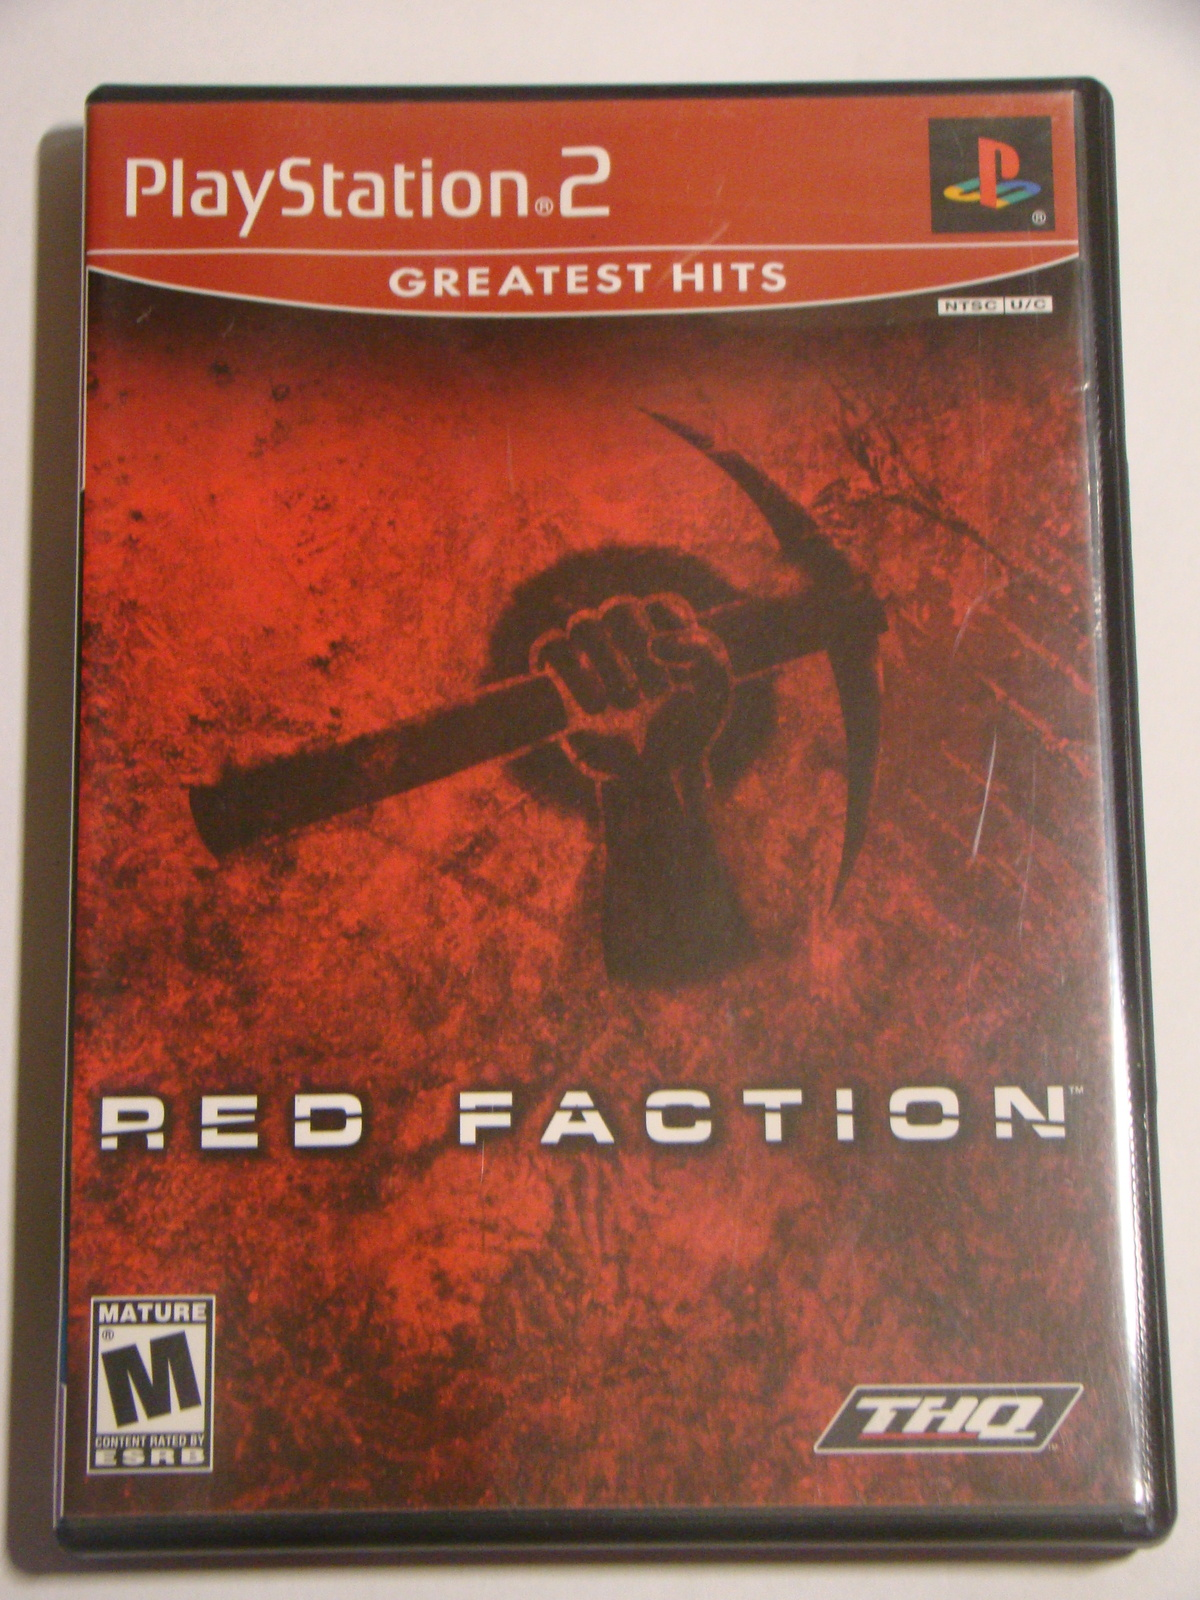 Playstation 2 - RED FACTION (Complete with Manual)